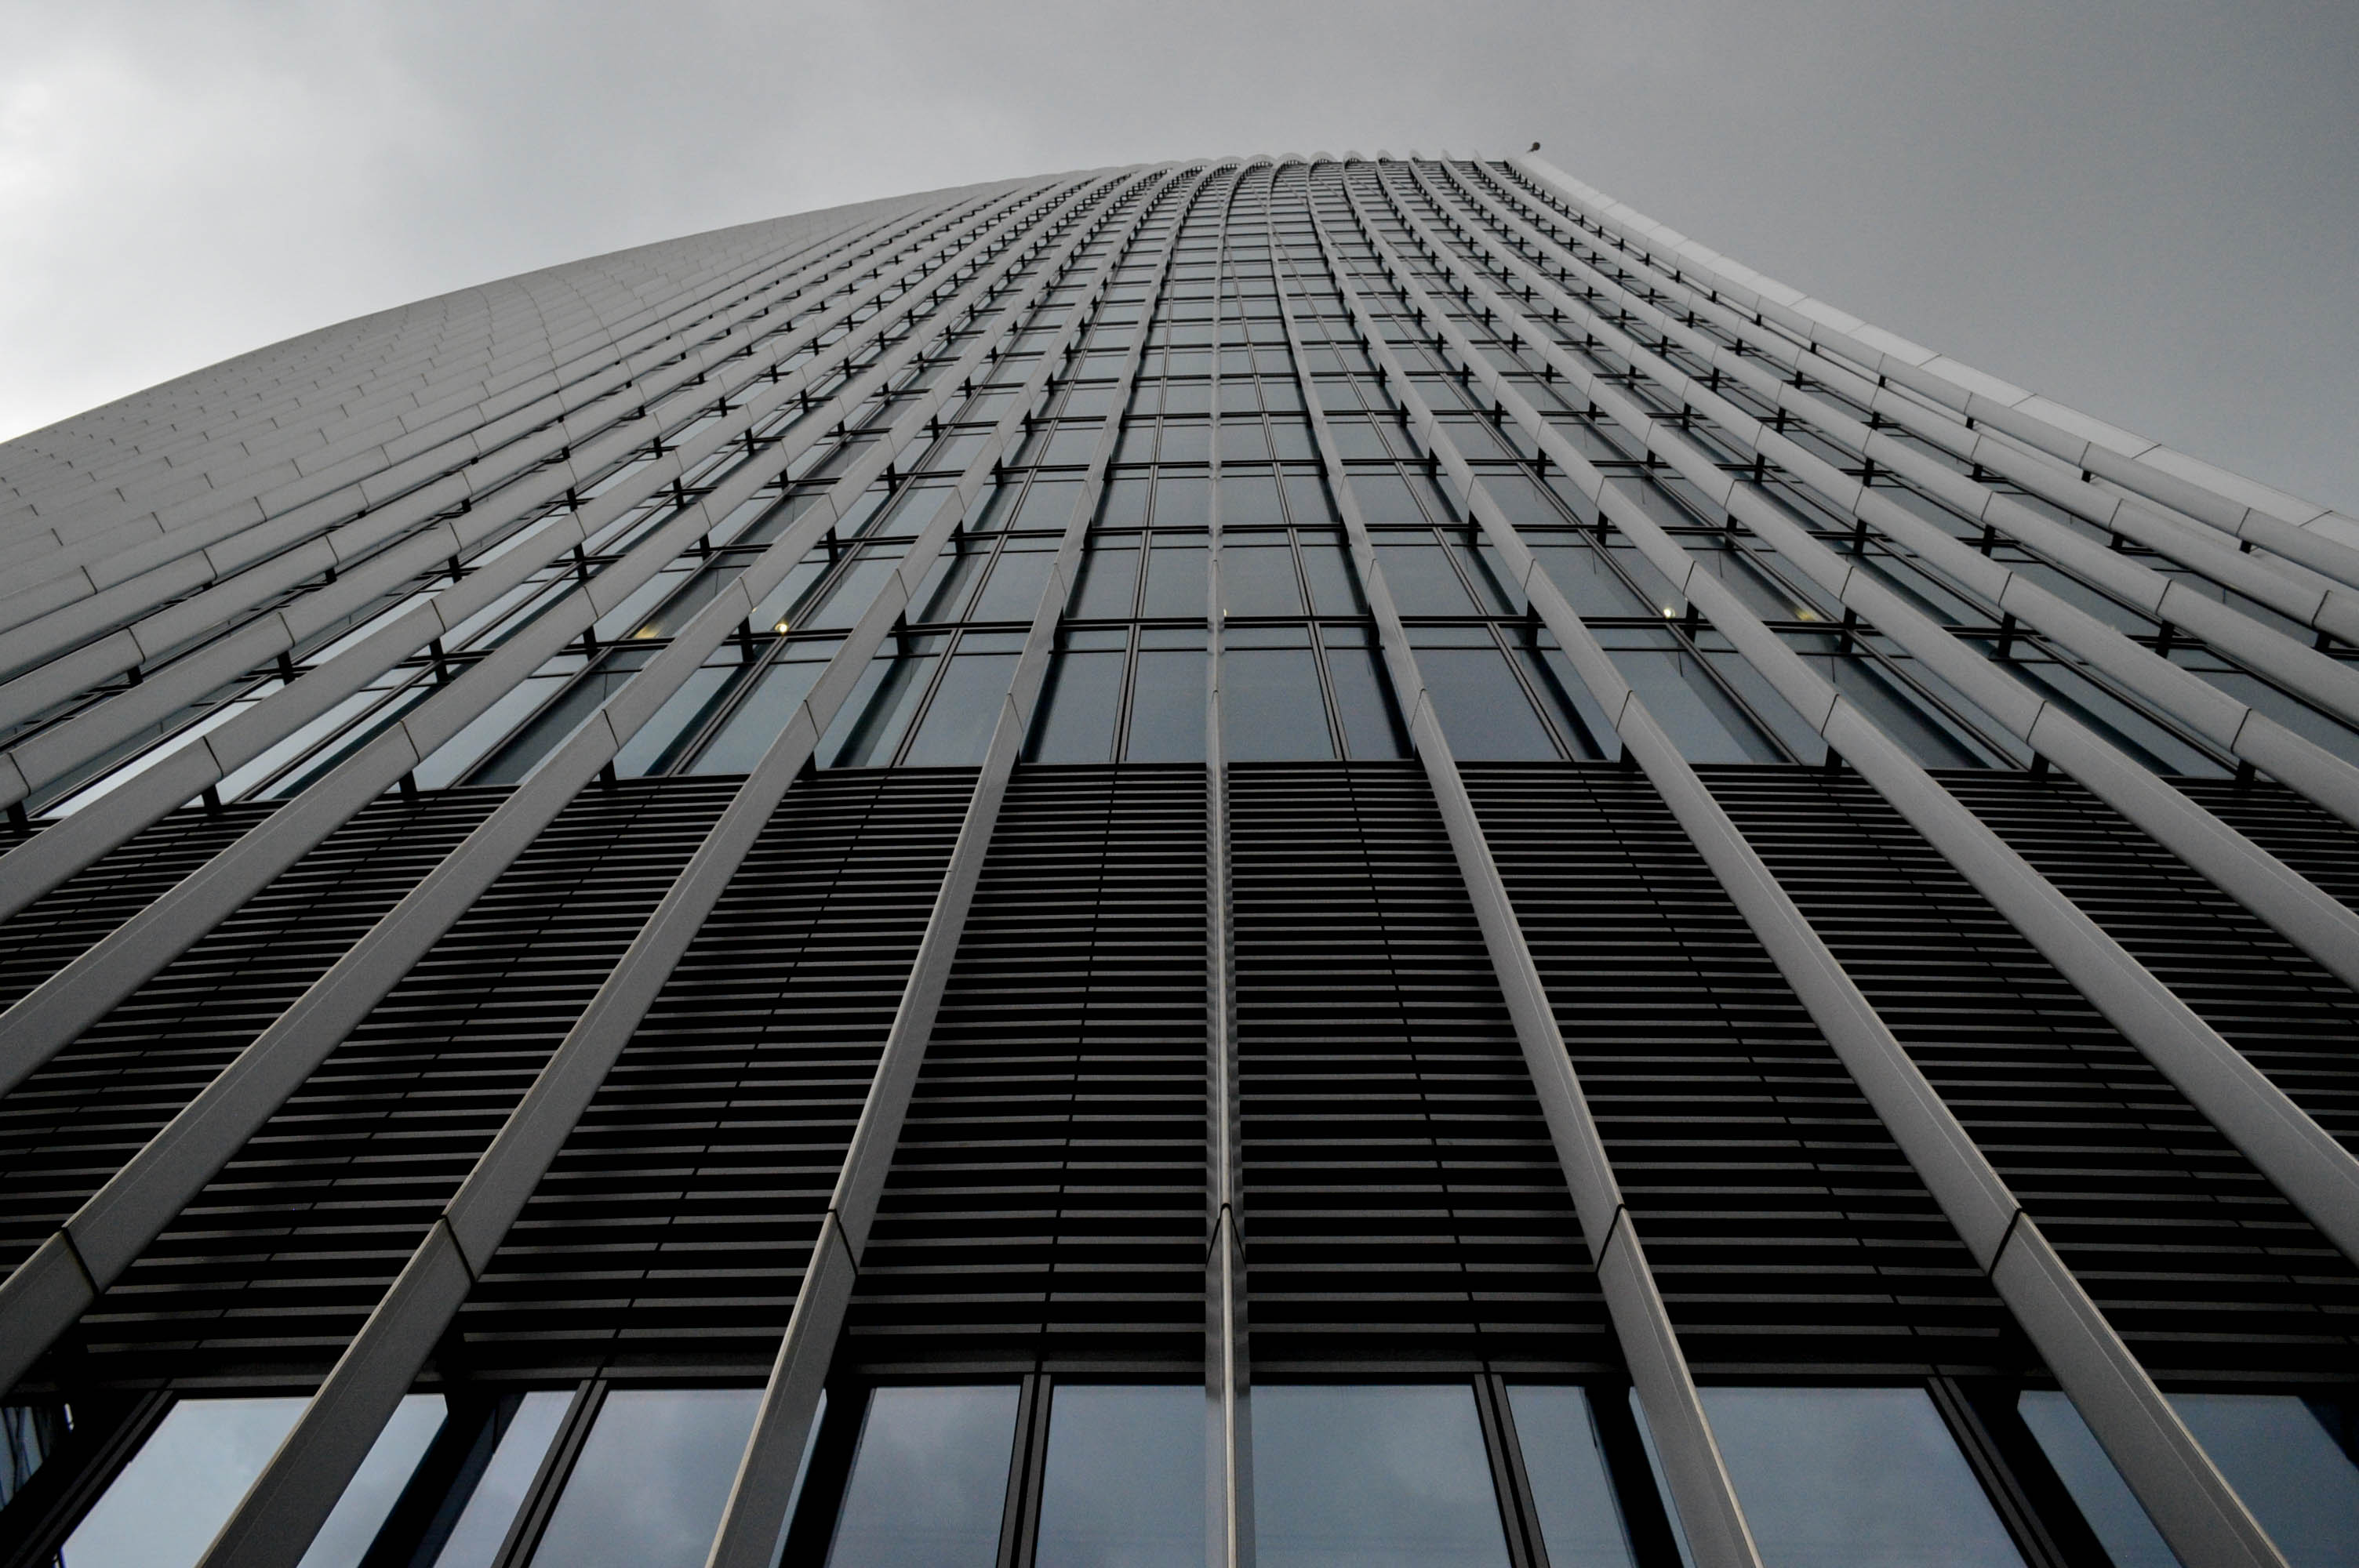 Looking up to the building from directly below